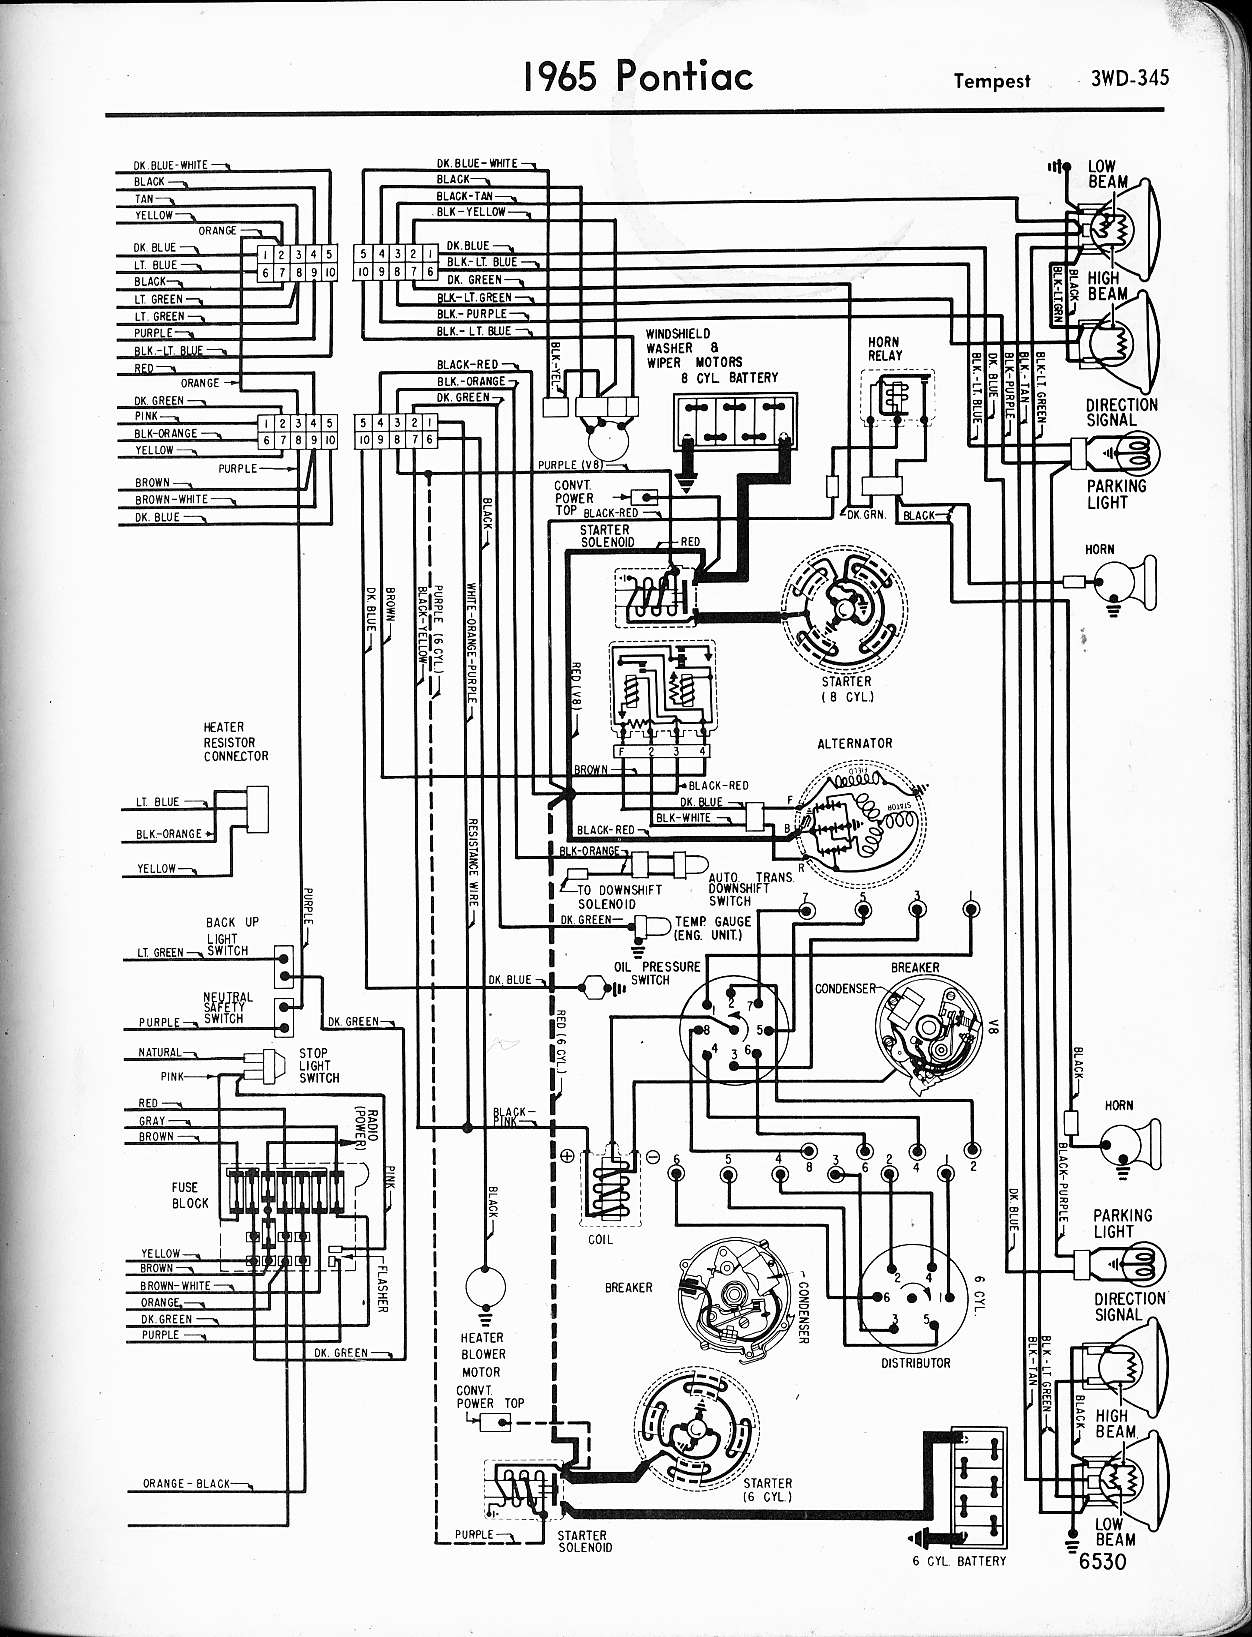 MWire5765 345 wallace racing wiring diagrams wiring diagram for 68 cougar starter at reclaimingppi.co